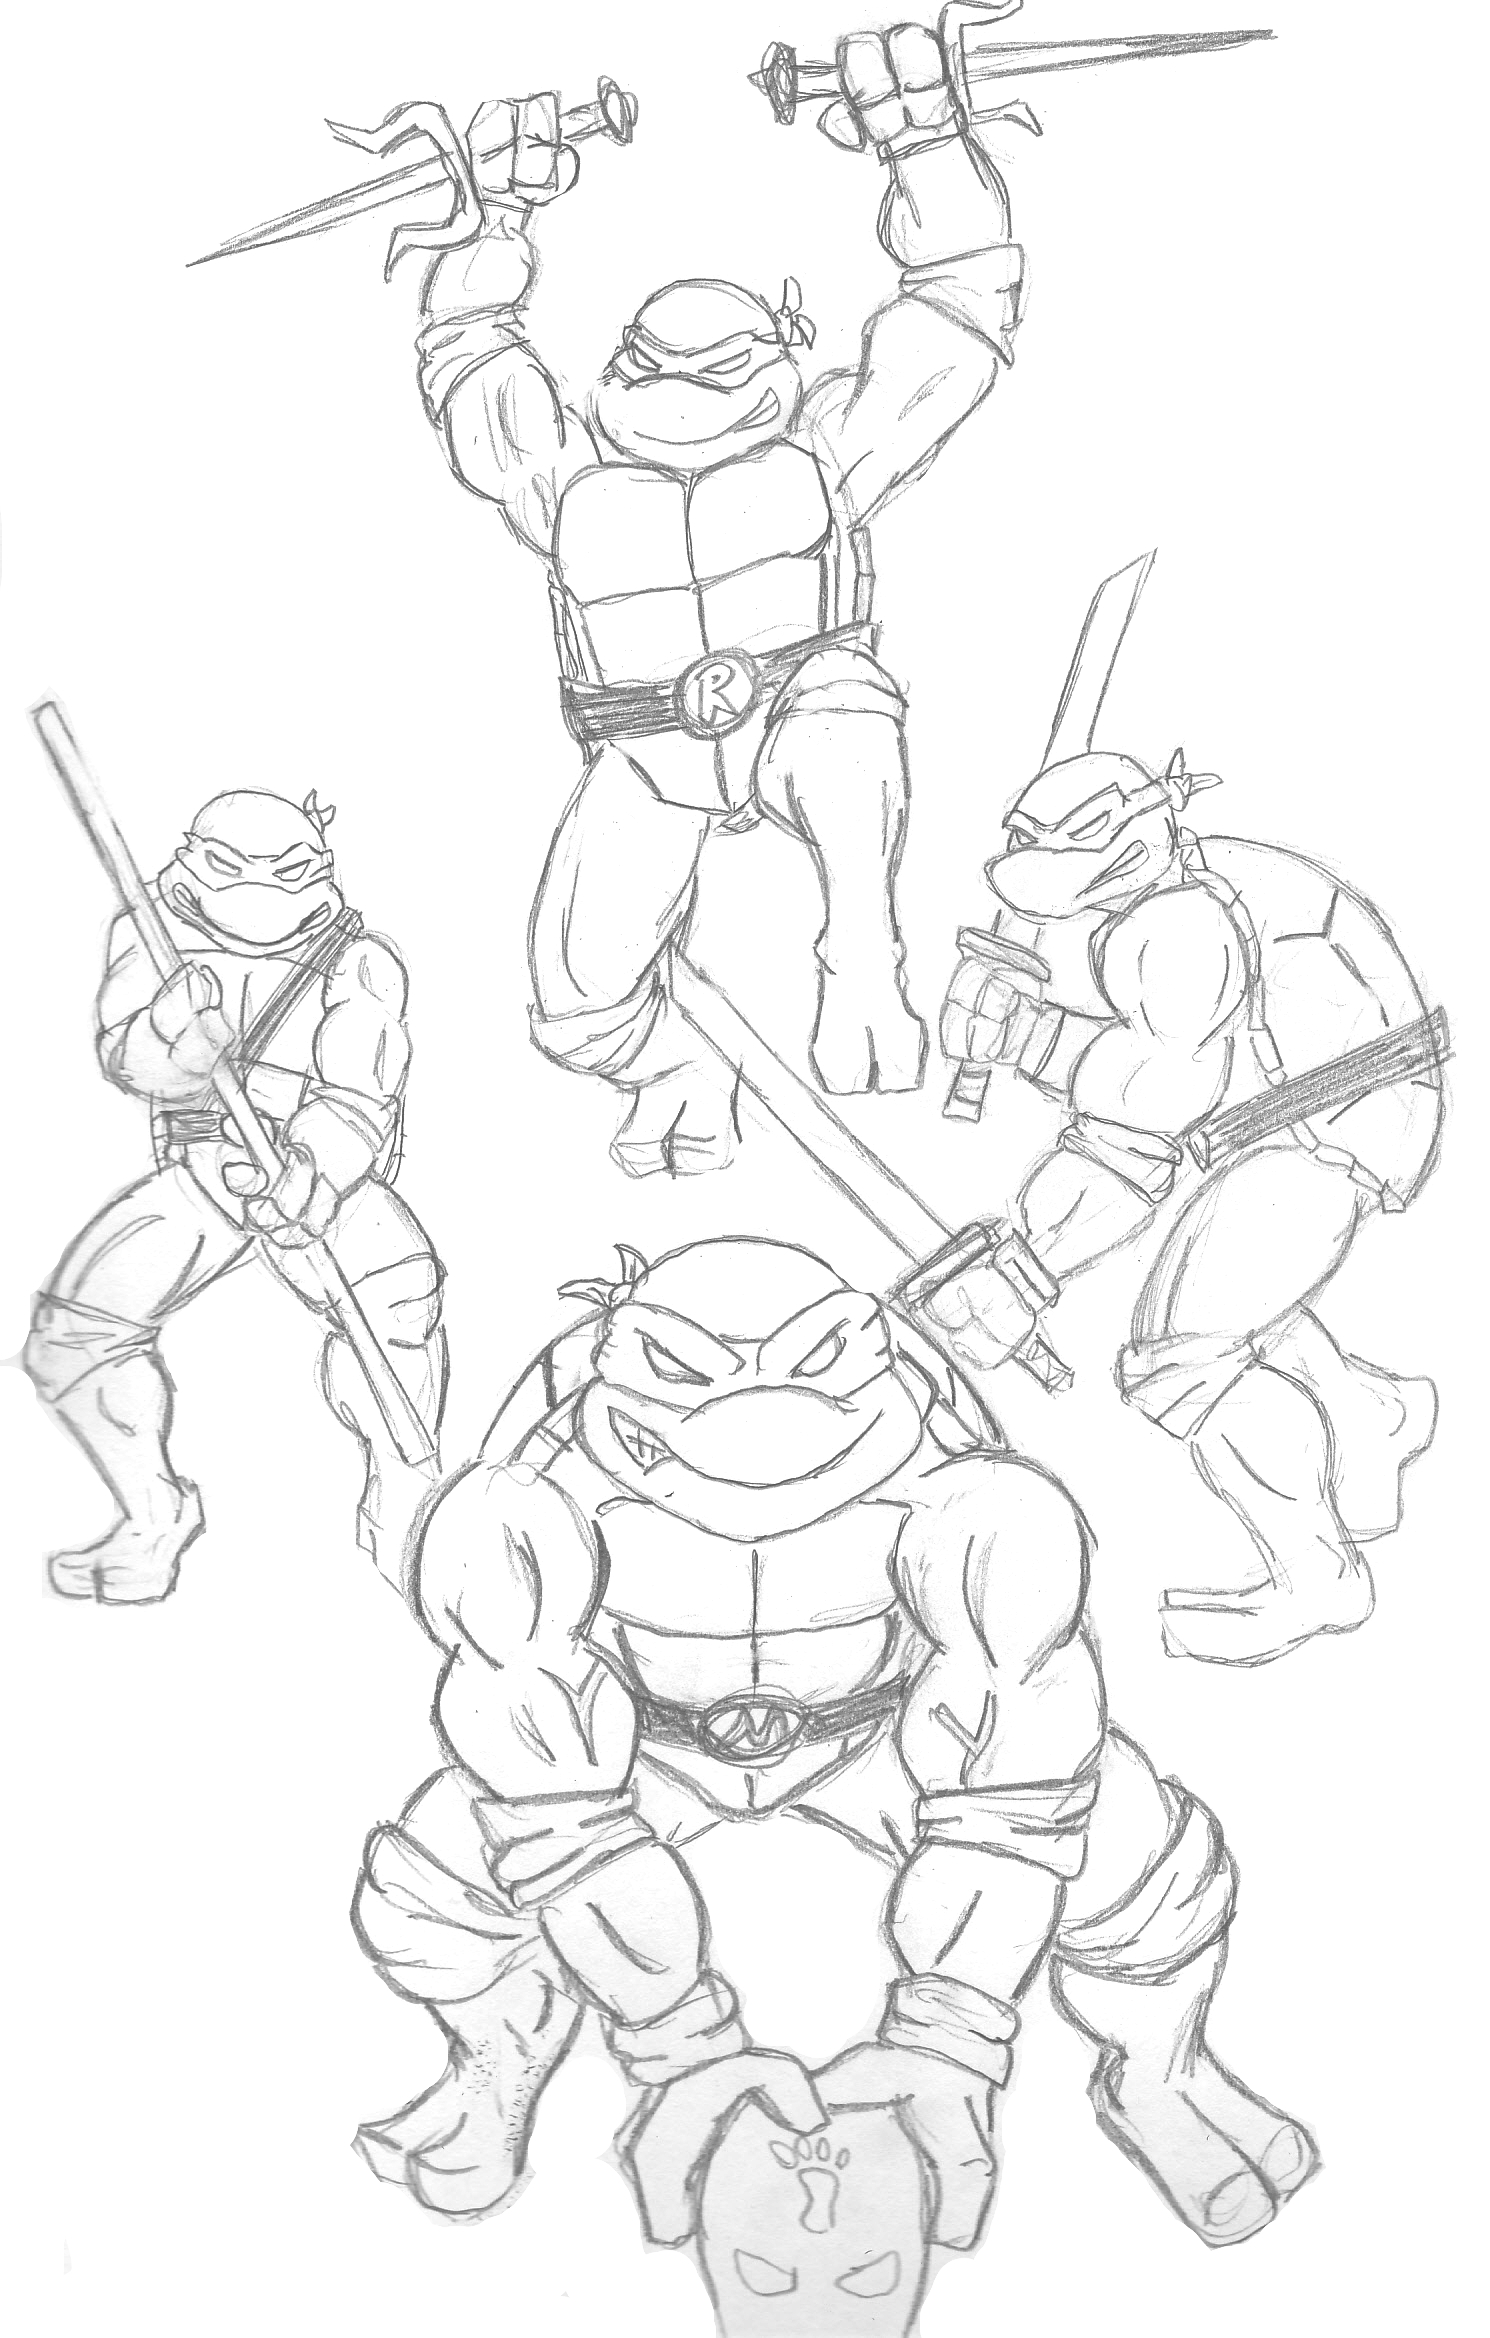 ninja turtles drawing at getdrawings com free for personal use